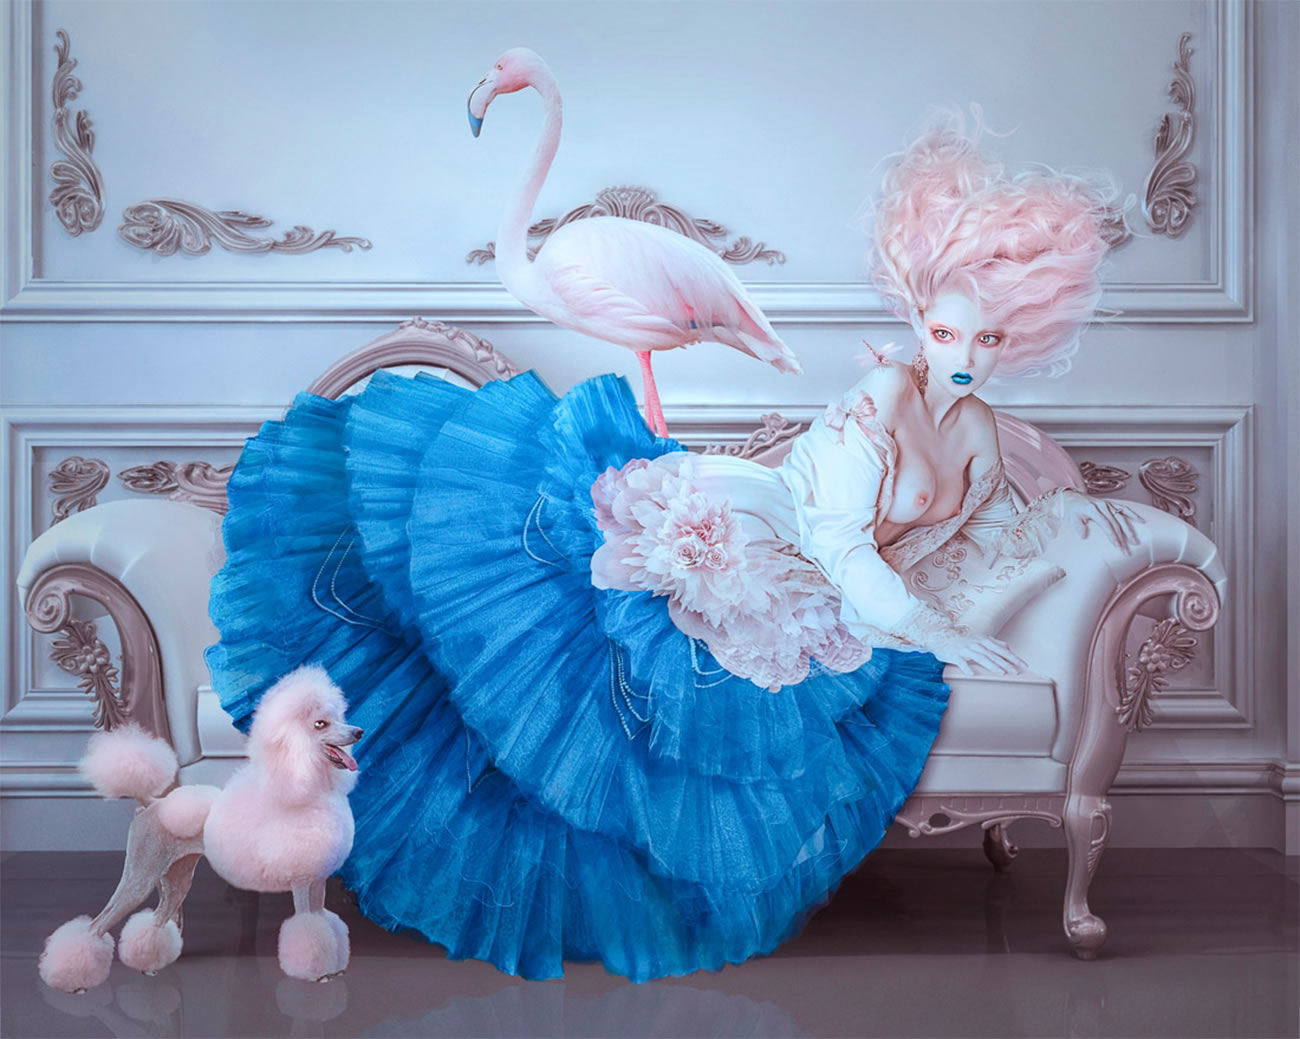 pink poodle and flamingo, woman laying on couch by nathalie shau